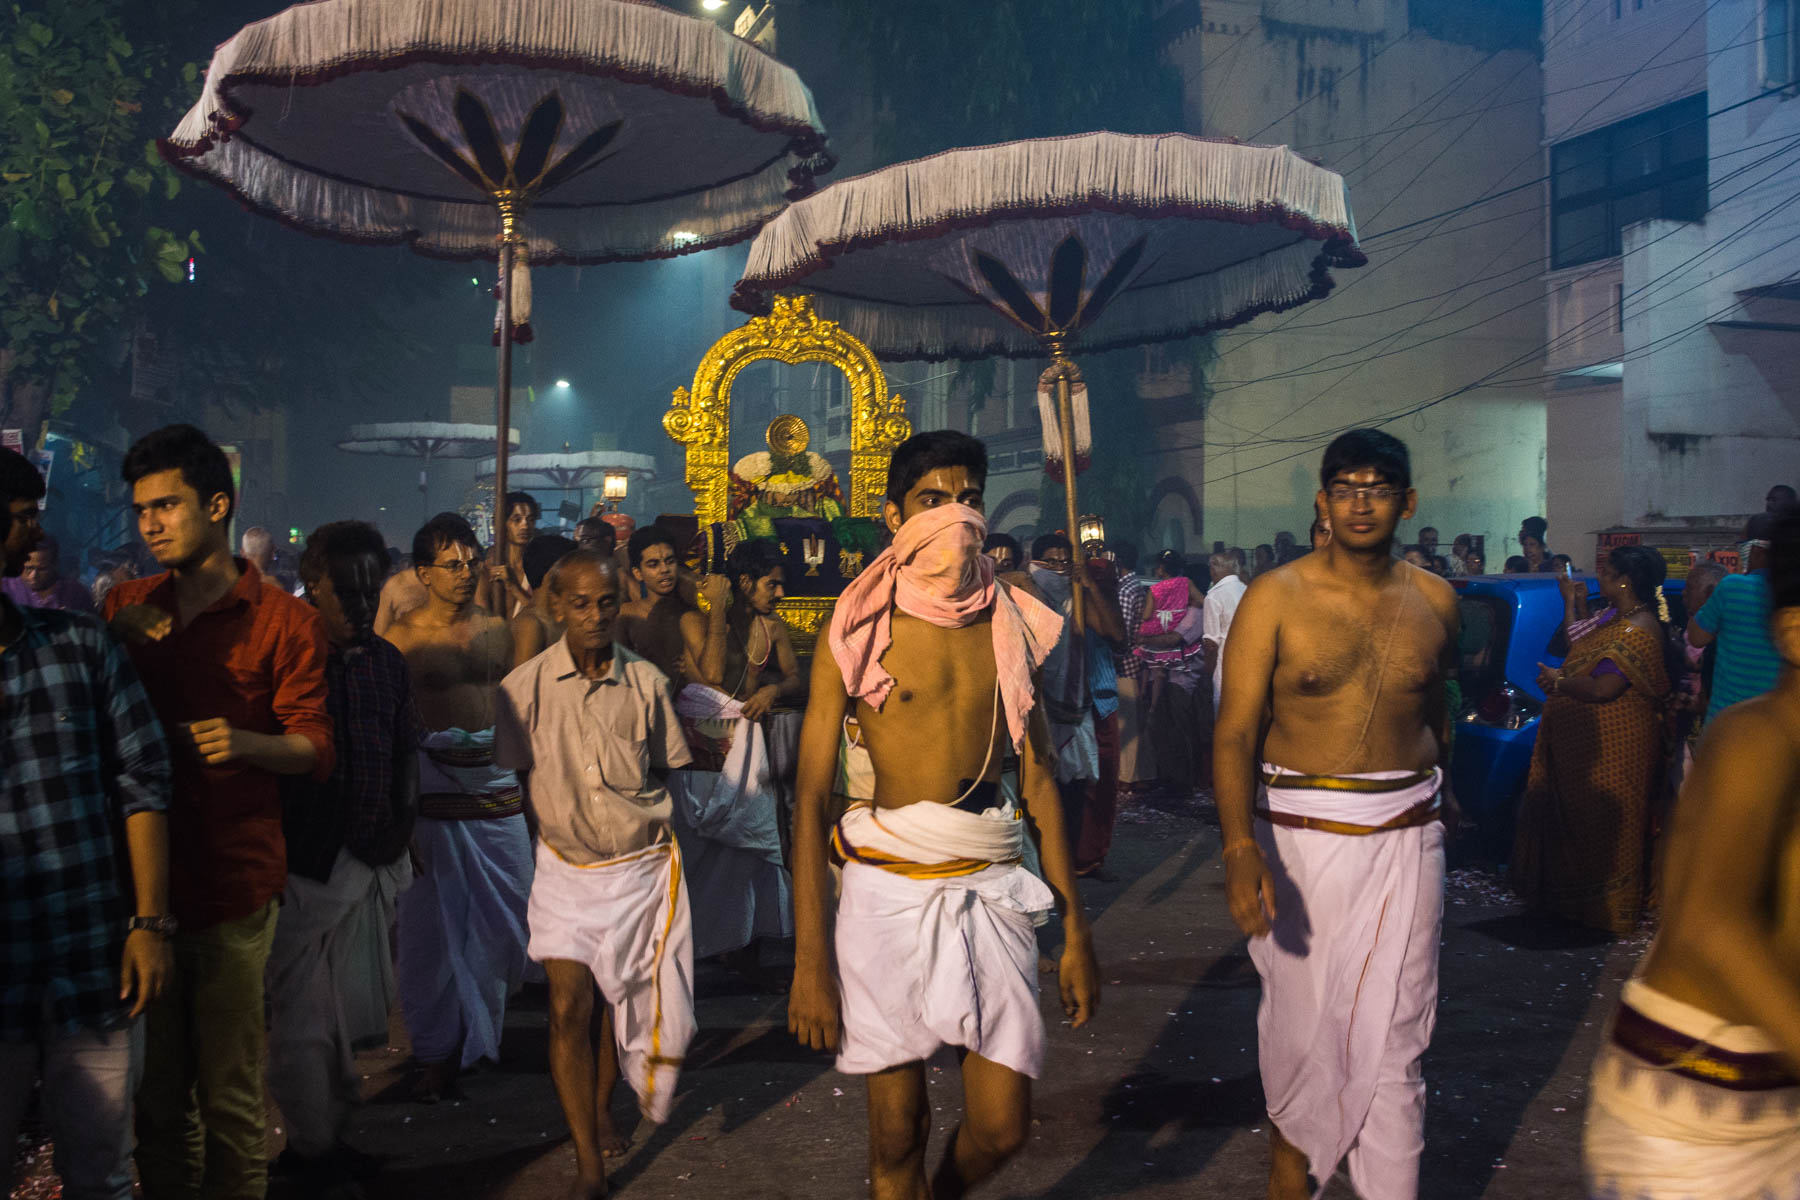 A priest with a wrapped face while celebrating Diwali in Chennai, India - Lost With Purpose